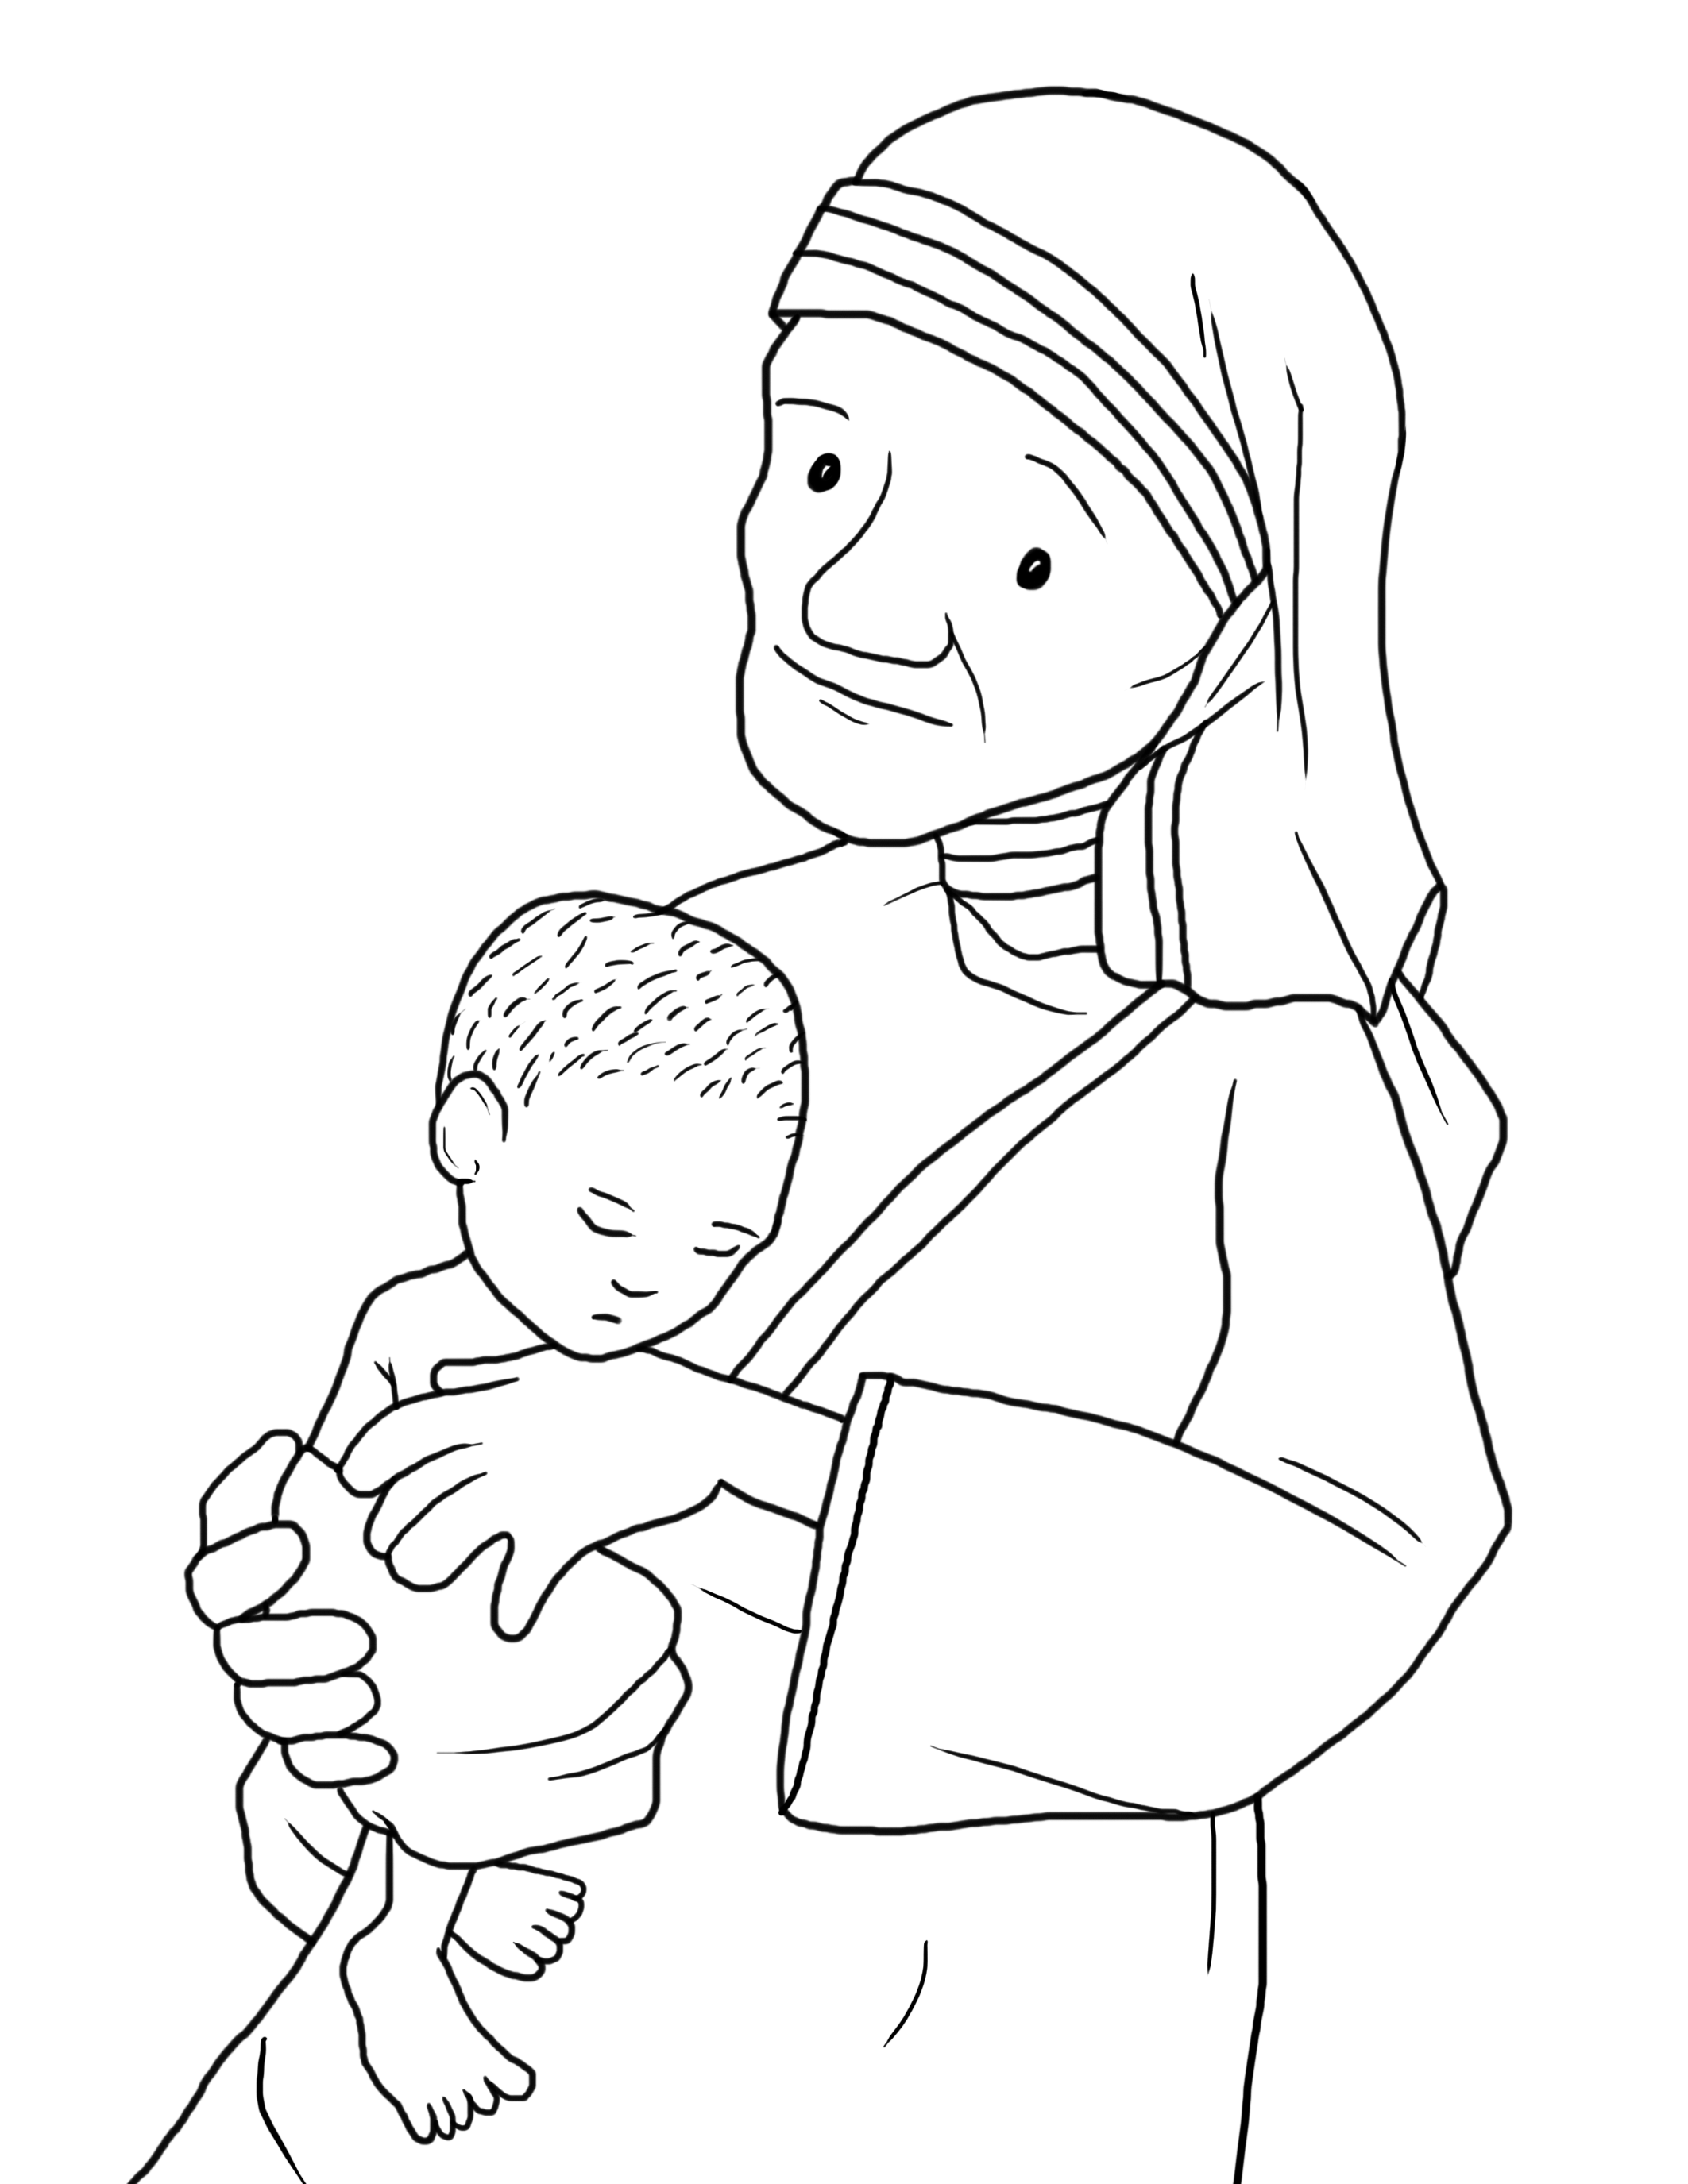 Blessed Mother Teresa Coloring Pages | coloring pages | Pinterest ...